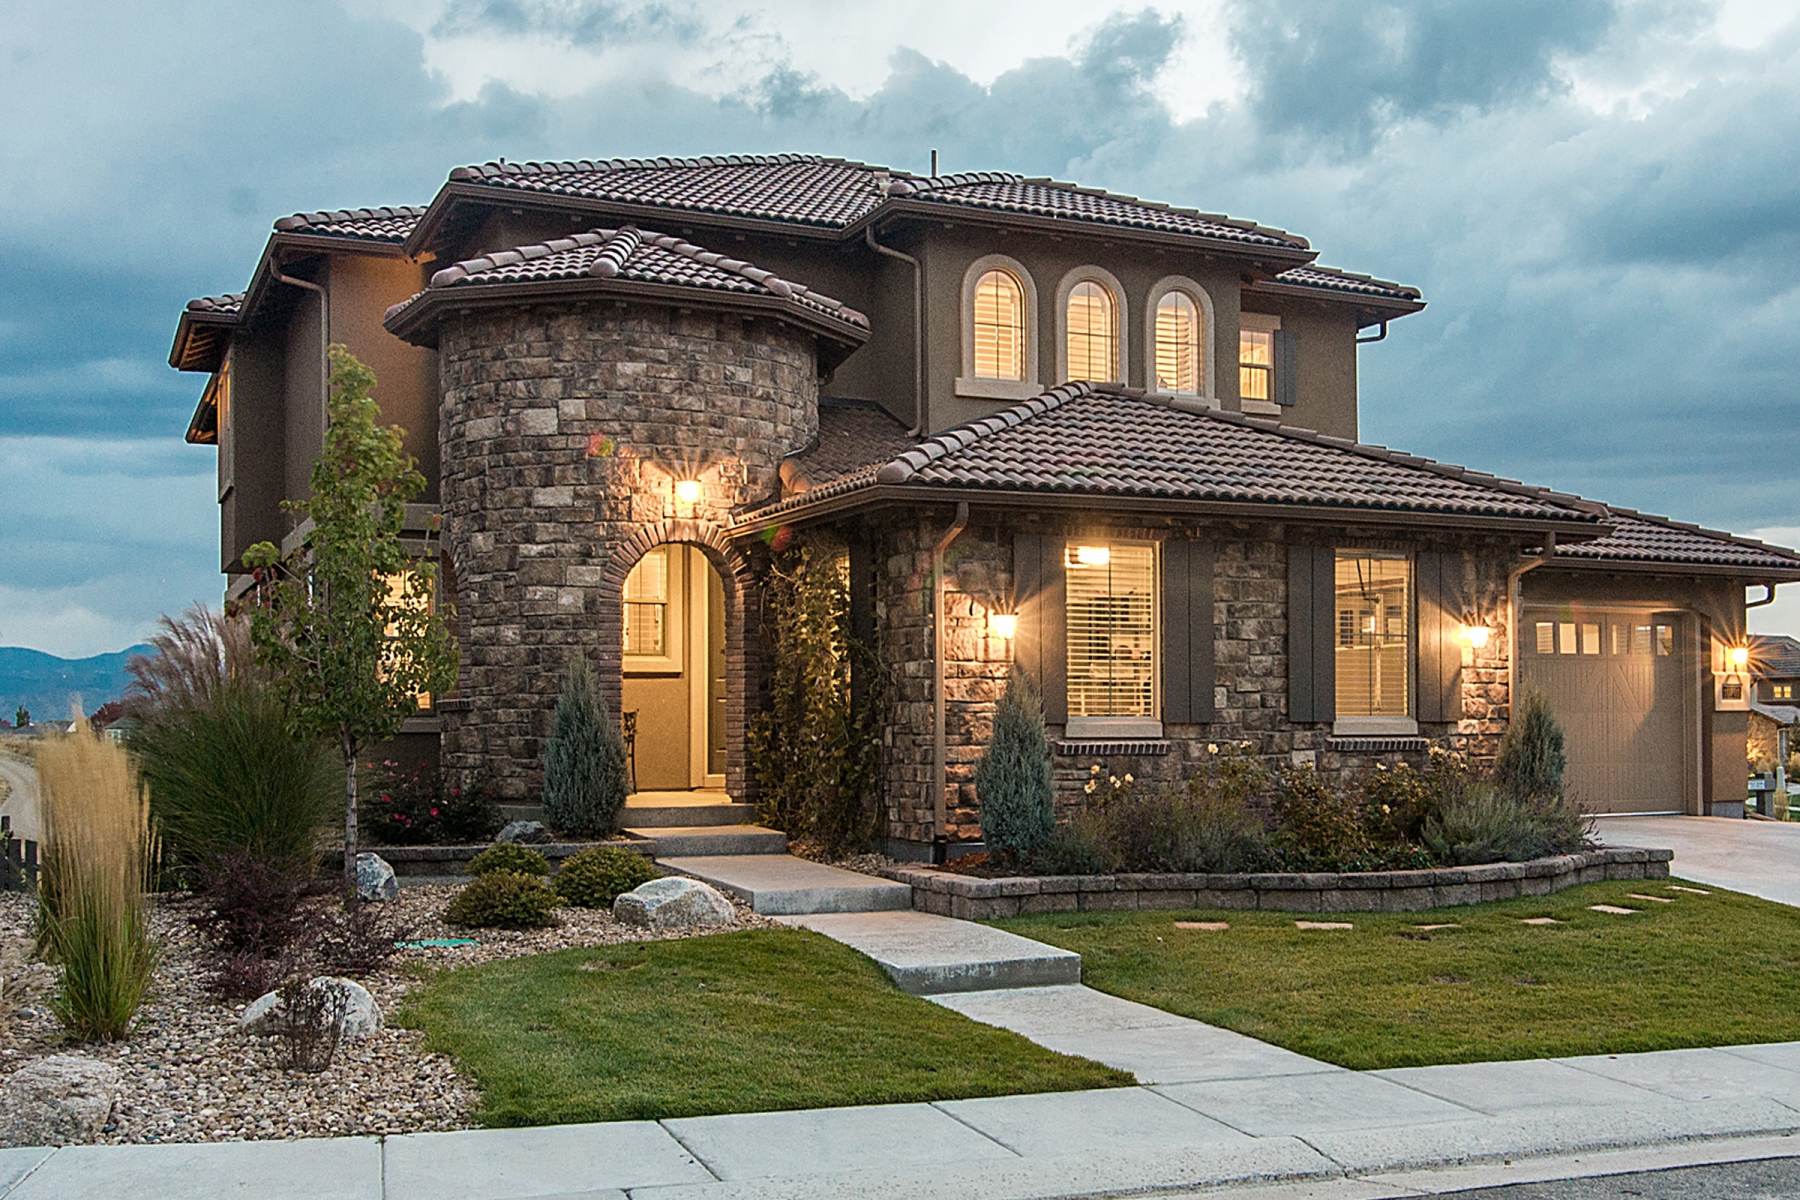 Single Family Home for Active at Highly coveted location on the western border of backcountry 10701 Manorstone Dr Highlands Ranch, Colorado 80126 United States